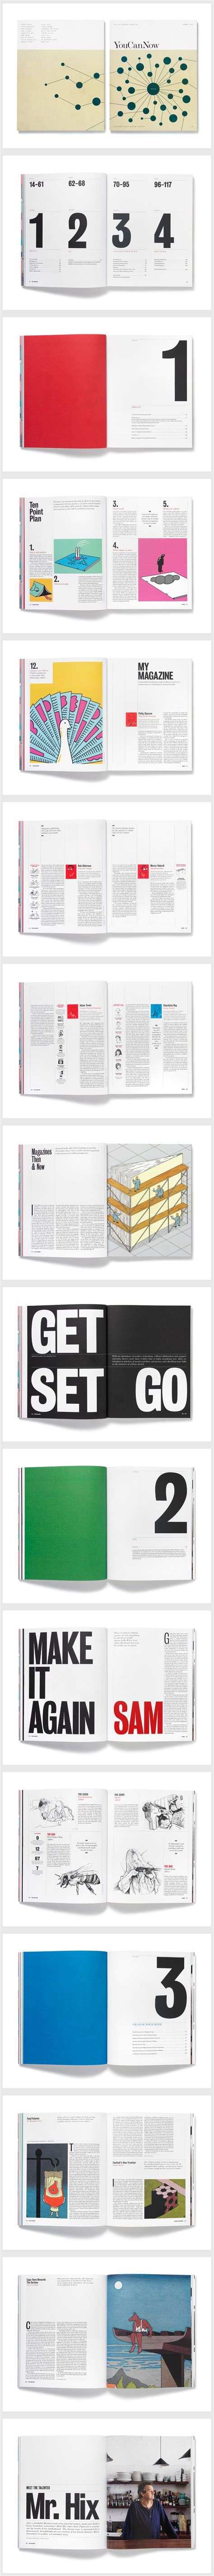 graphic design magazine layout pdf 20 best page numbering images on pinterest